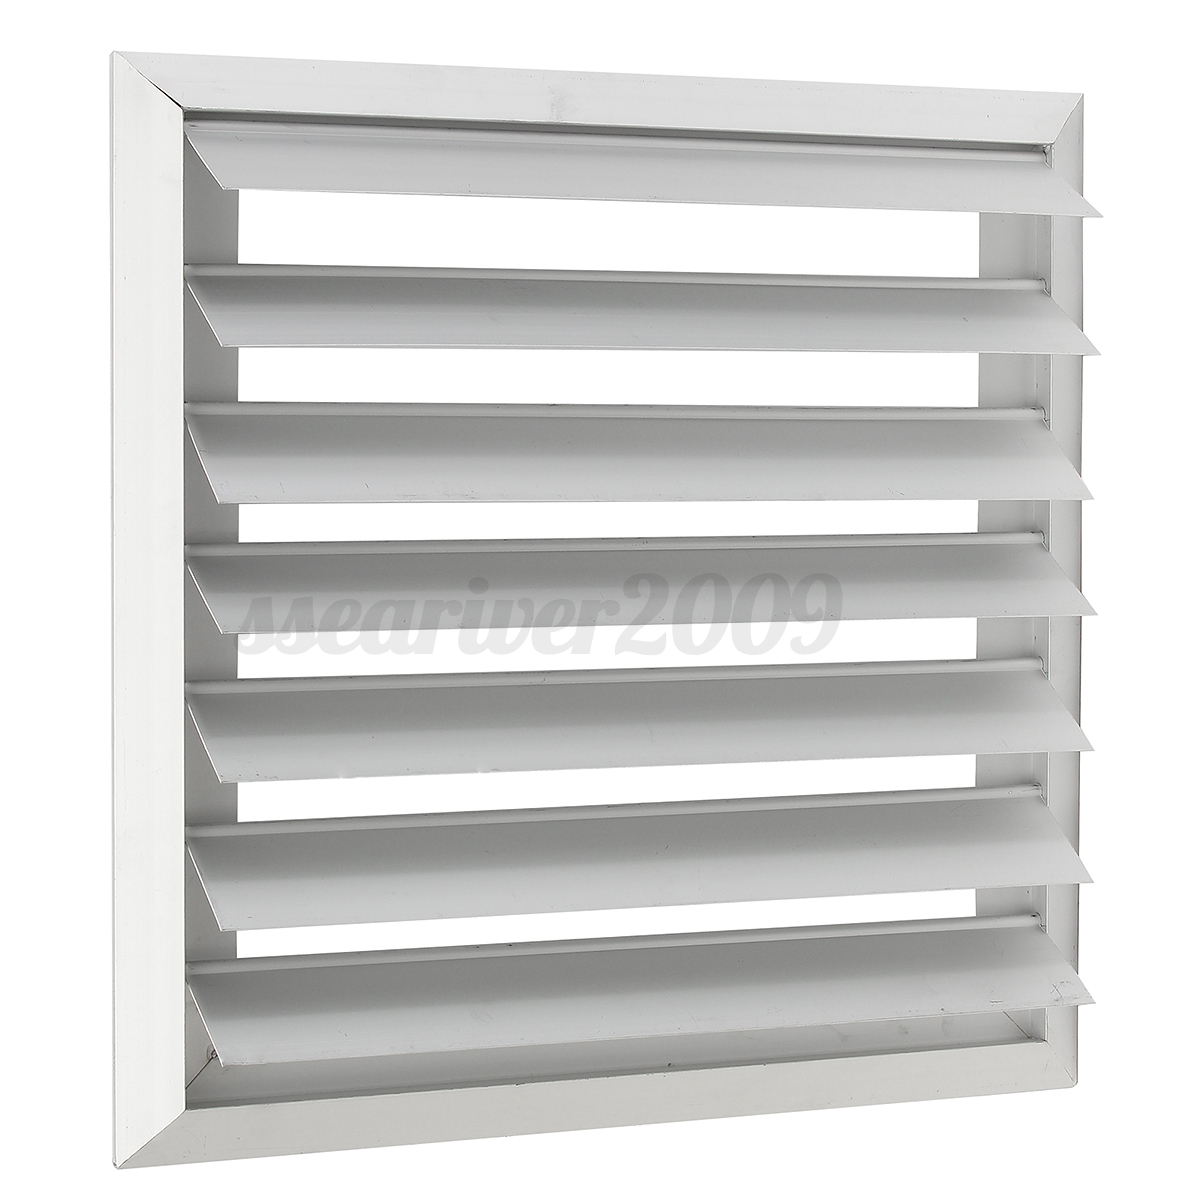 Ventilation Ducts Information : Air vent grille cover flaps wall duct ventilation